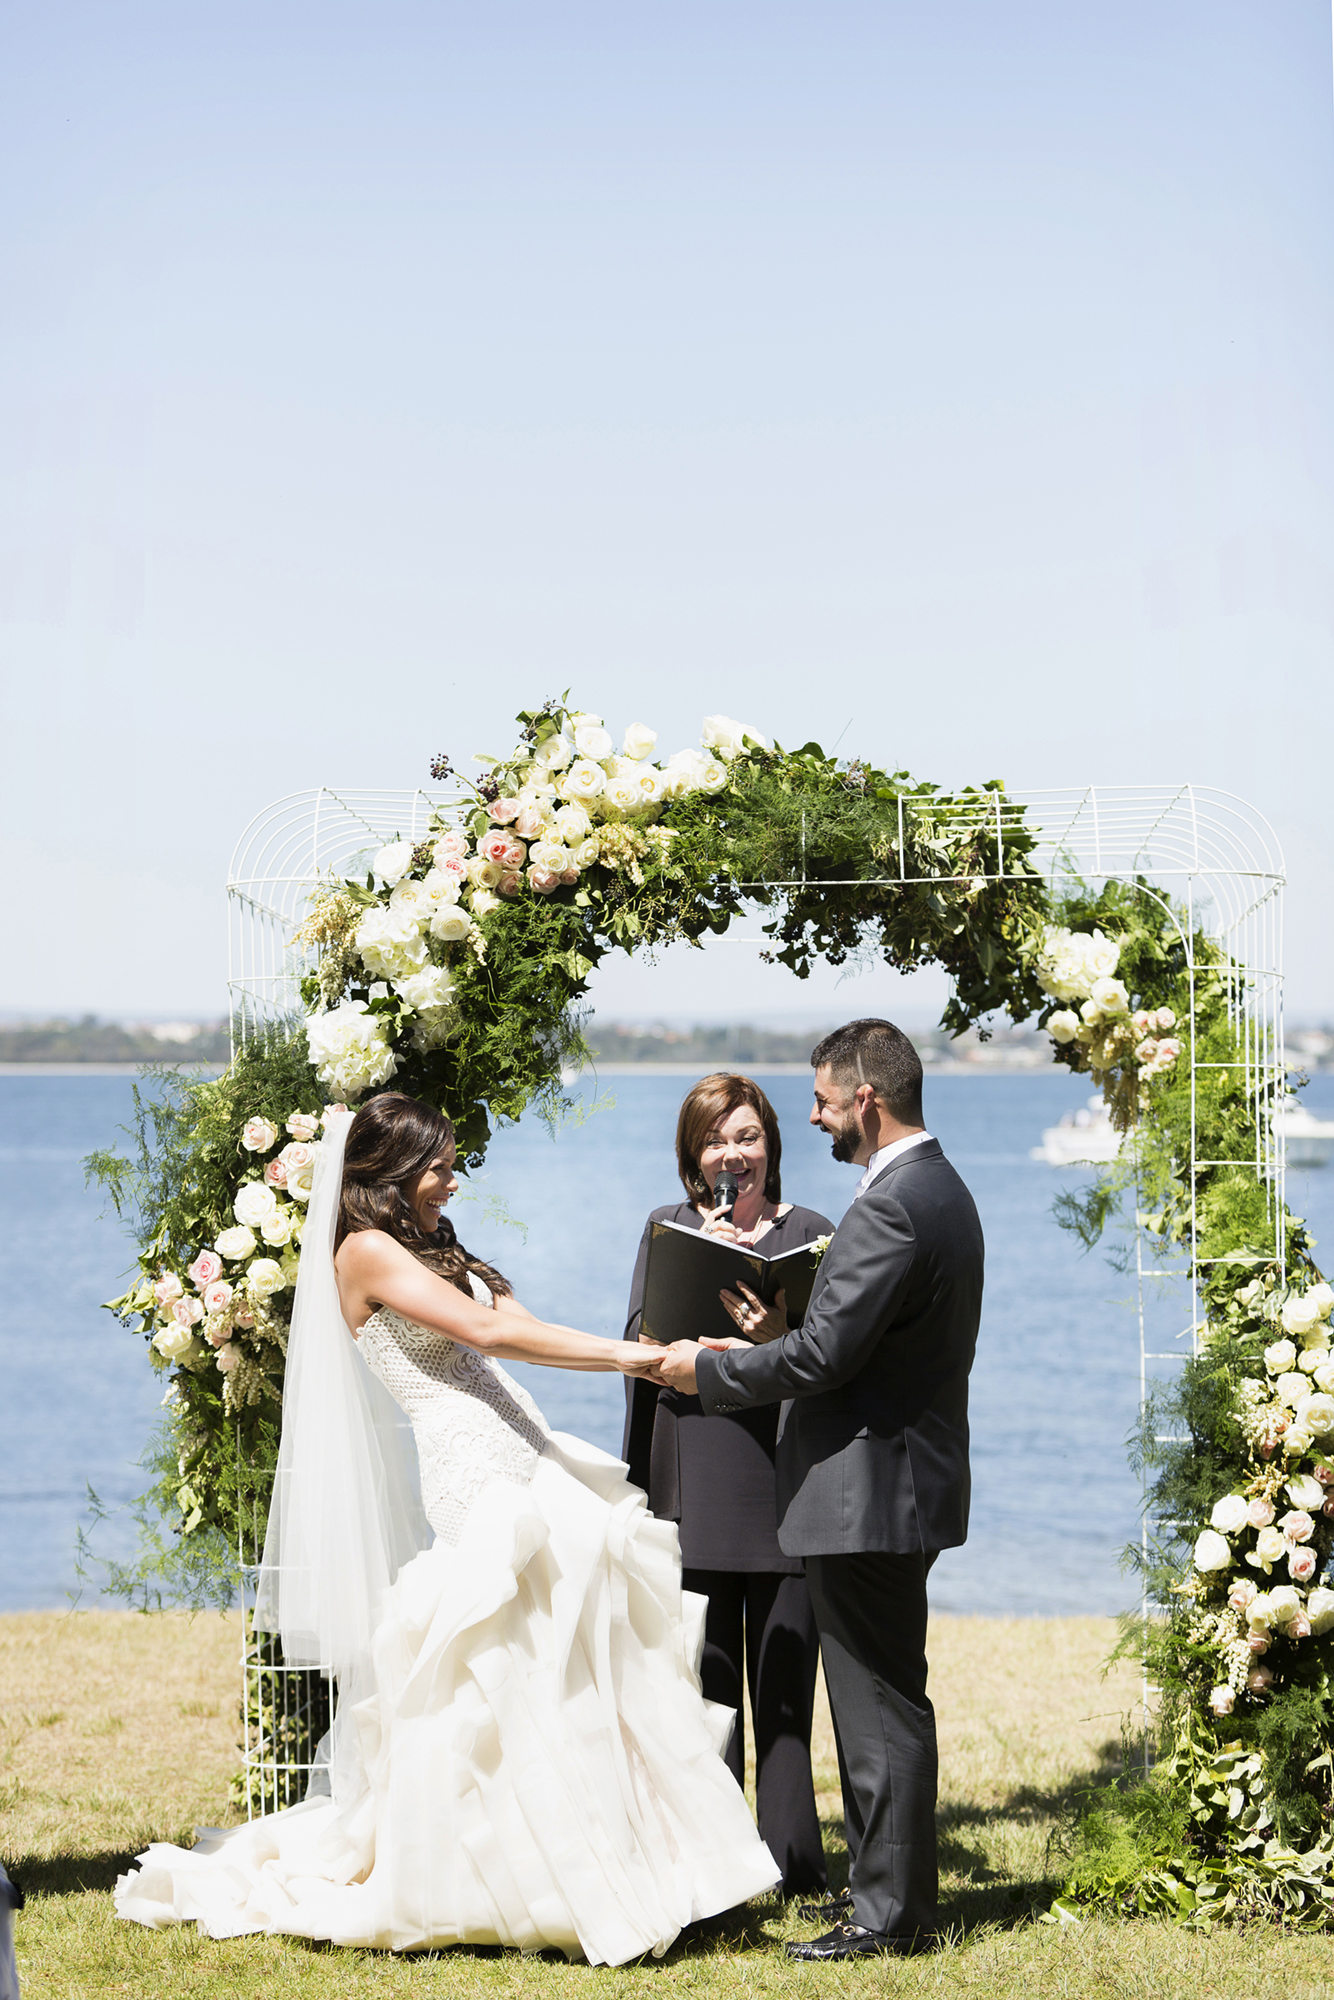 wedding arch hired for a beautiful wedding backdrop